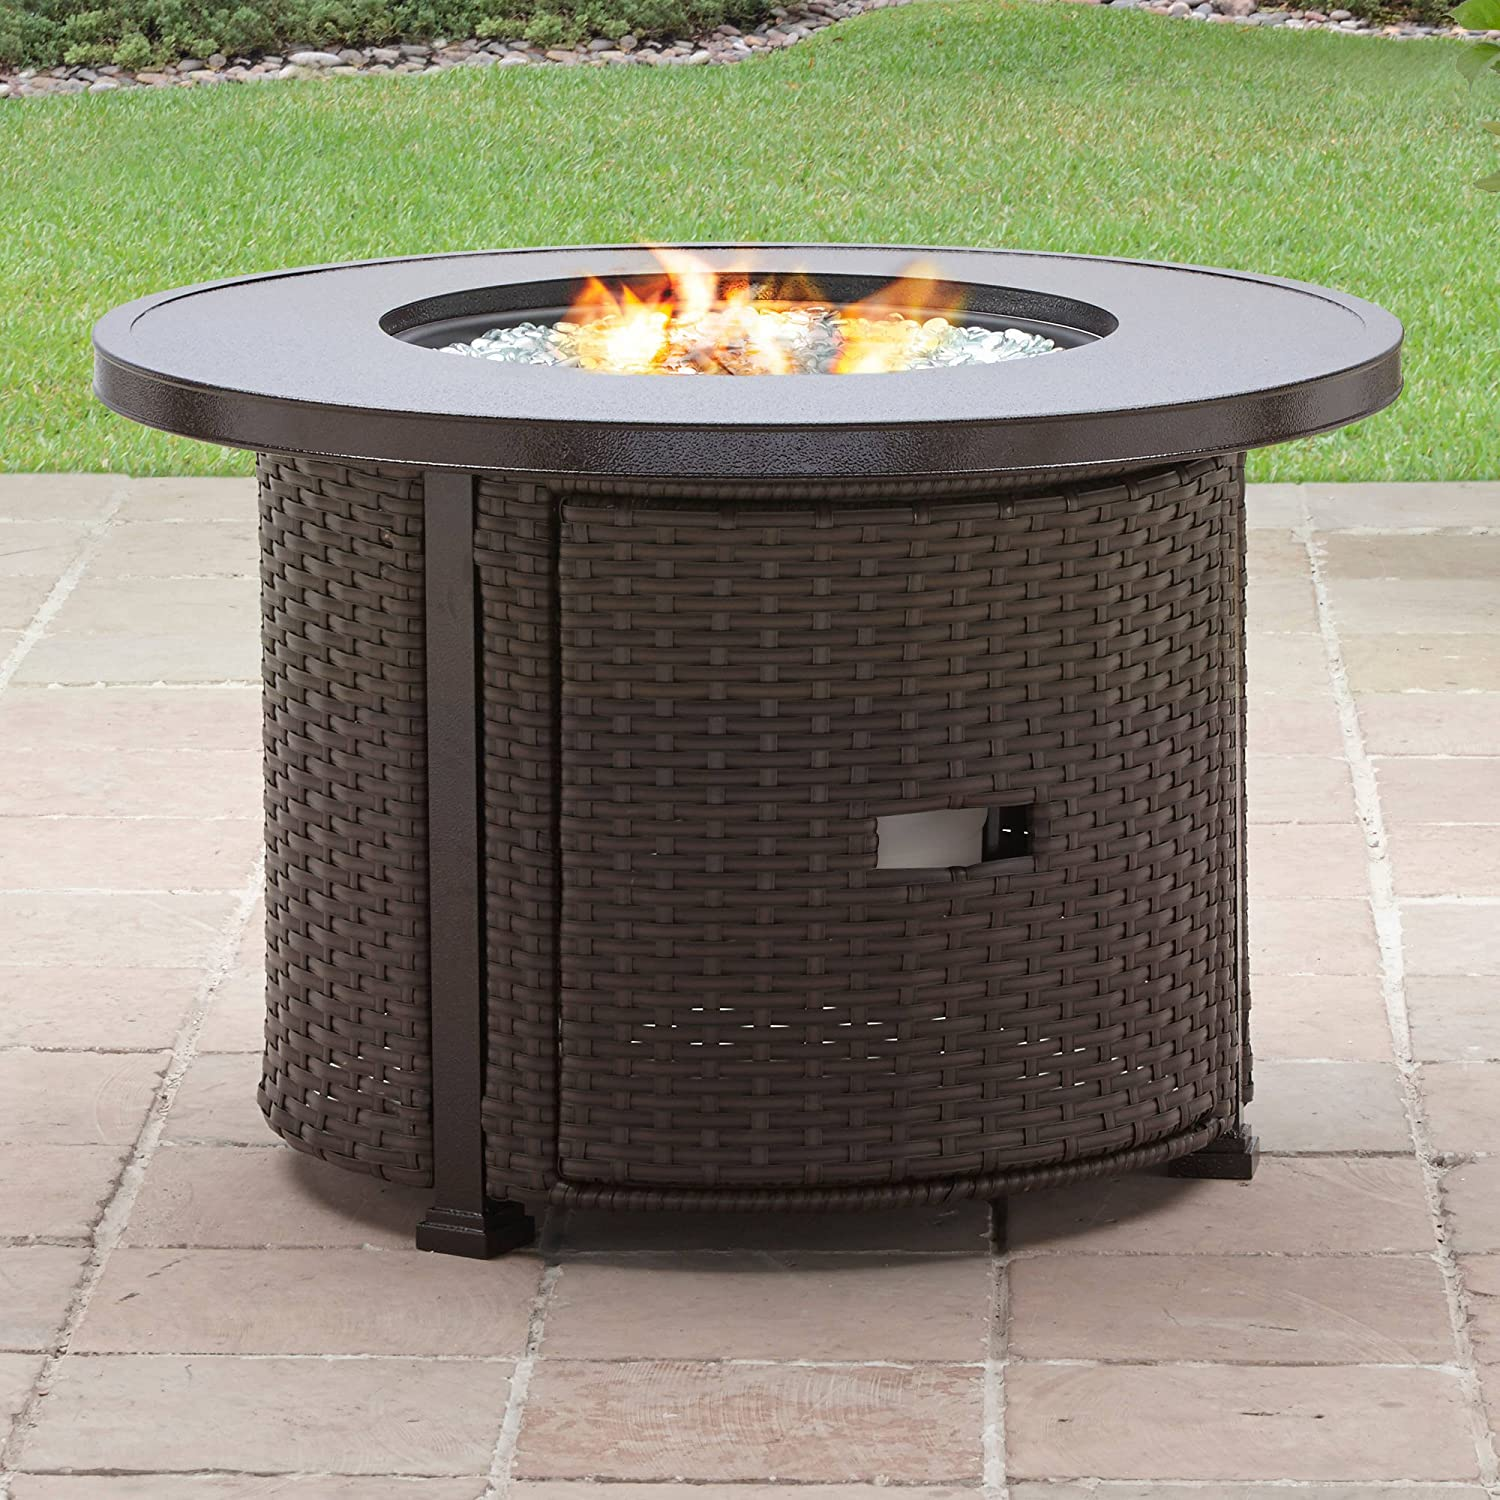 91HtqL0jqXL. SL1500  Top Result 50 Awesome Gas Fire Pit Cover